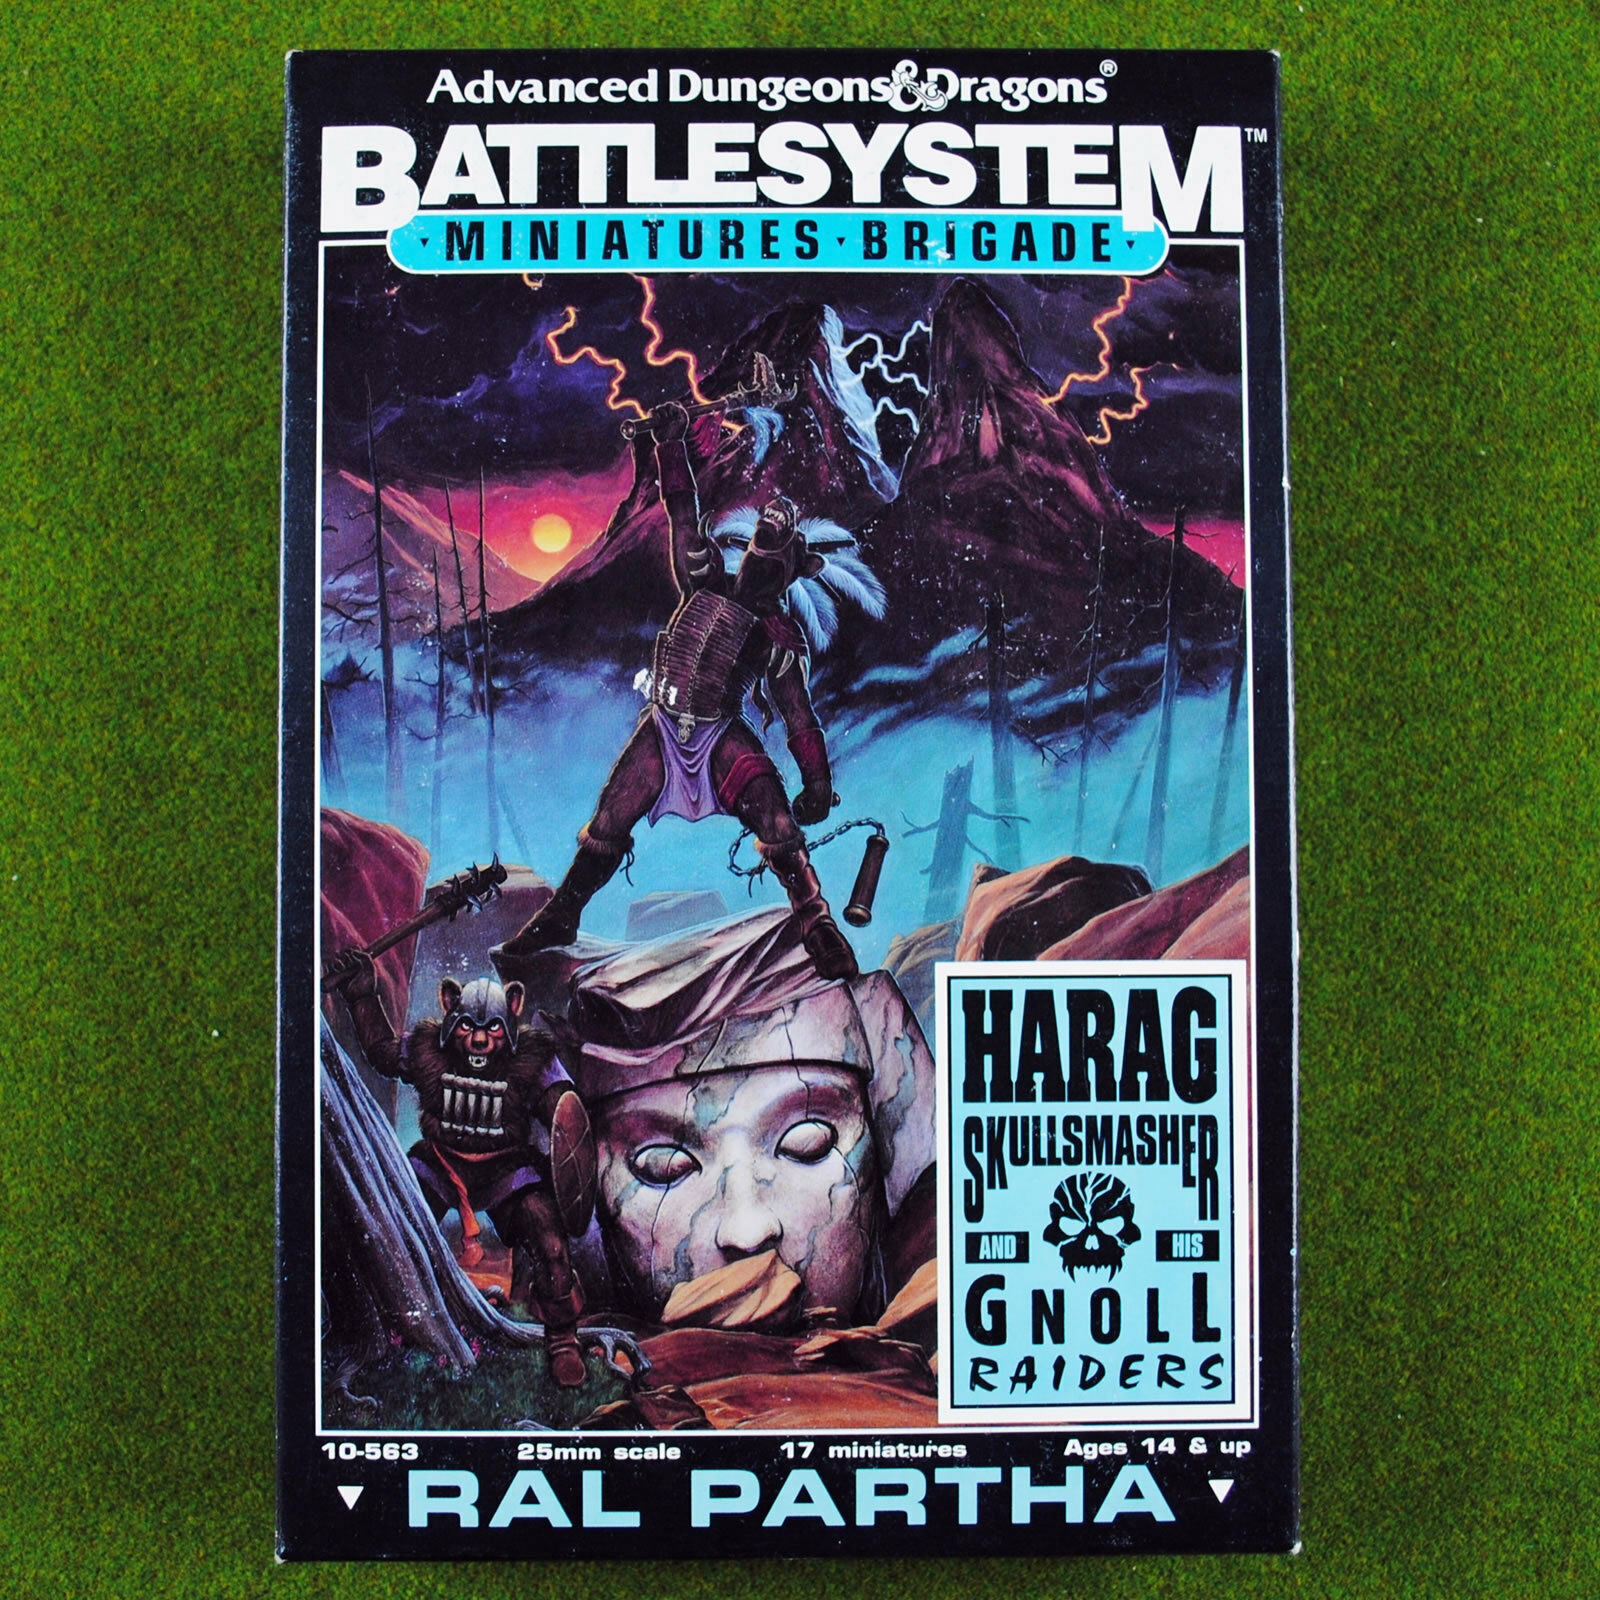 Ral Partha Battlesystem Harag Skullsmasher and Gnoll Raiders AD&D 25mm Gnolls